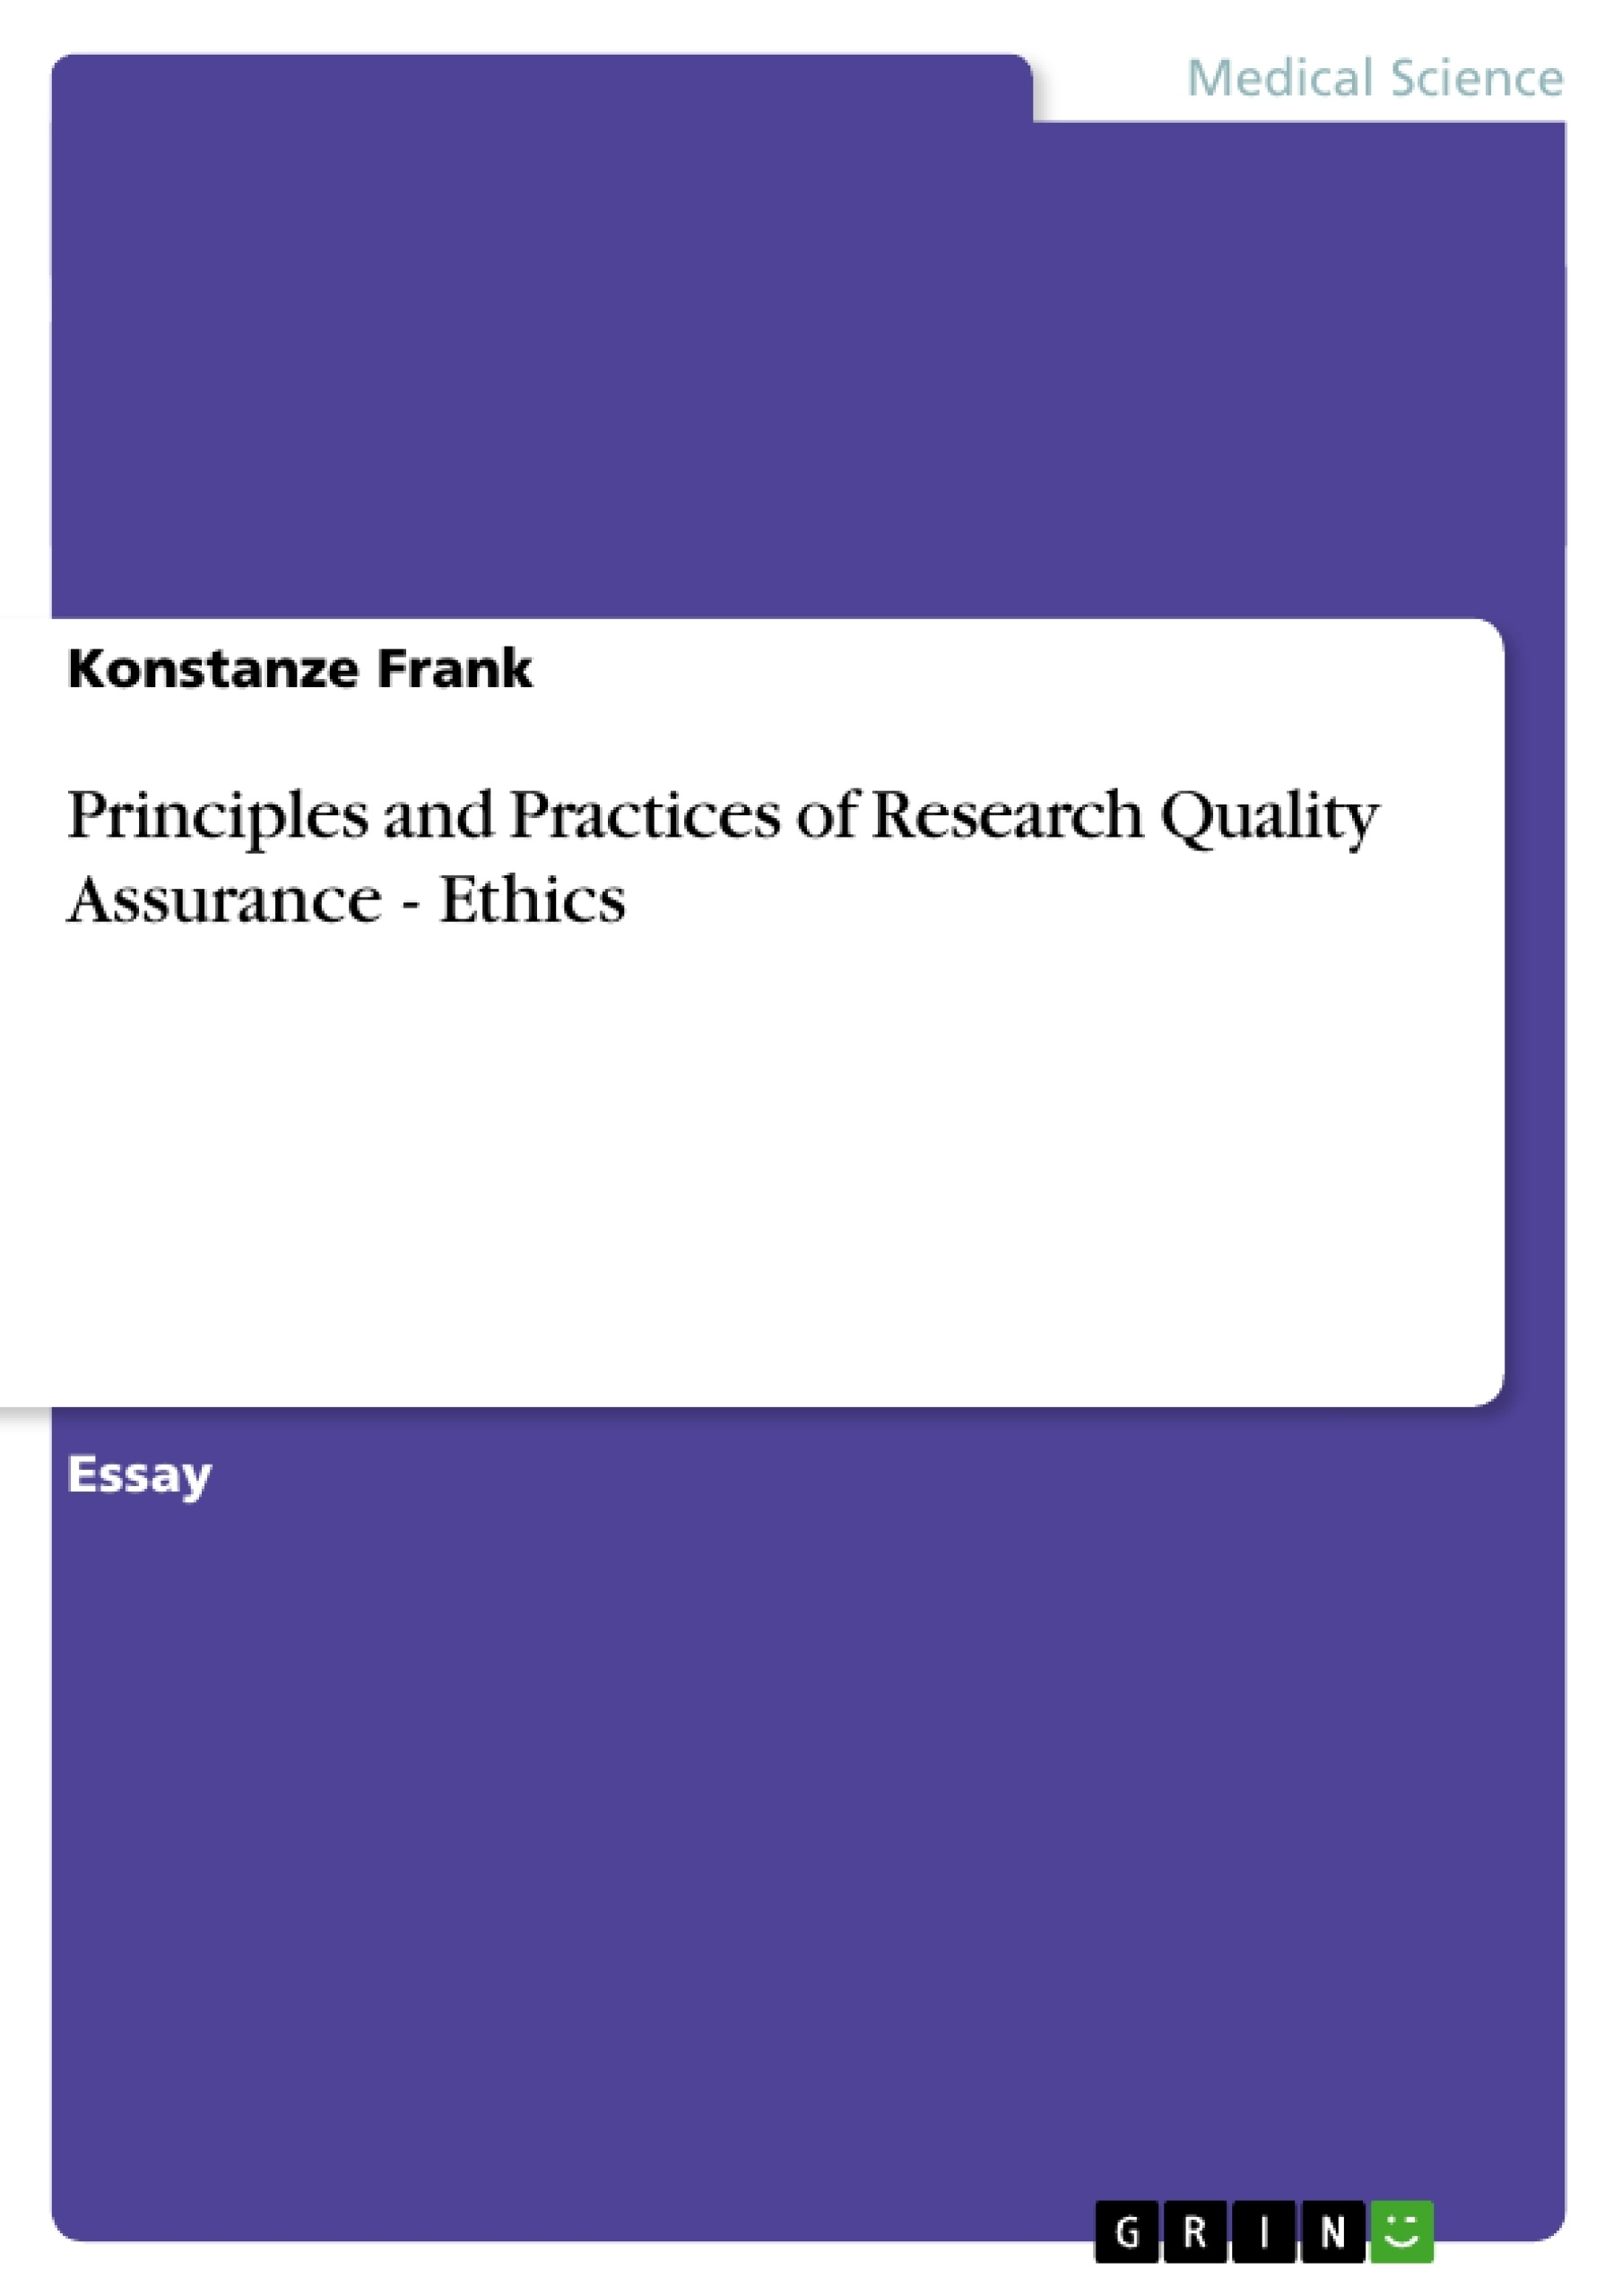 Title: Principles and Practices of Research Quality Assurance - Ethics